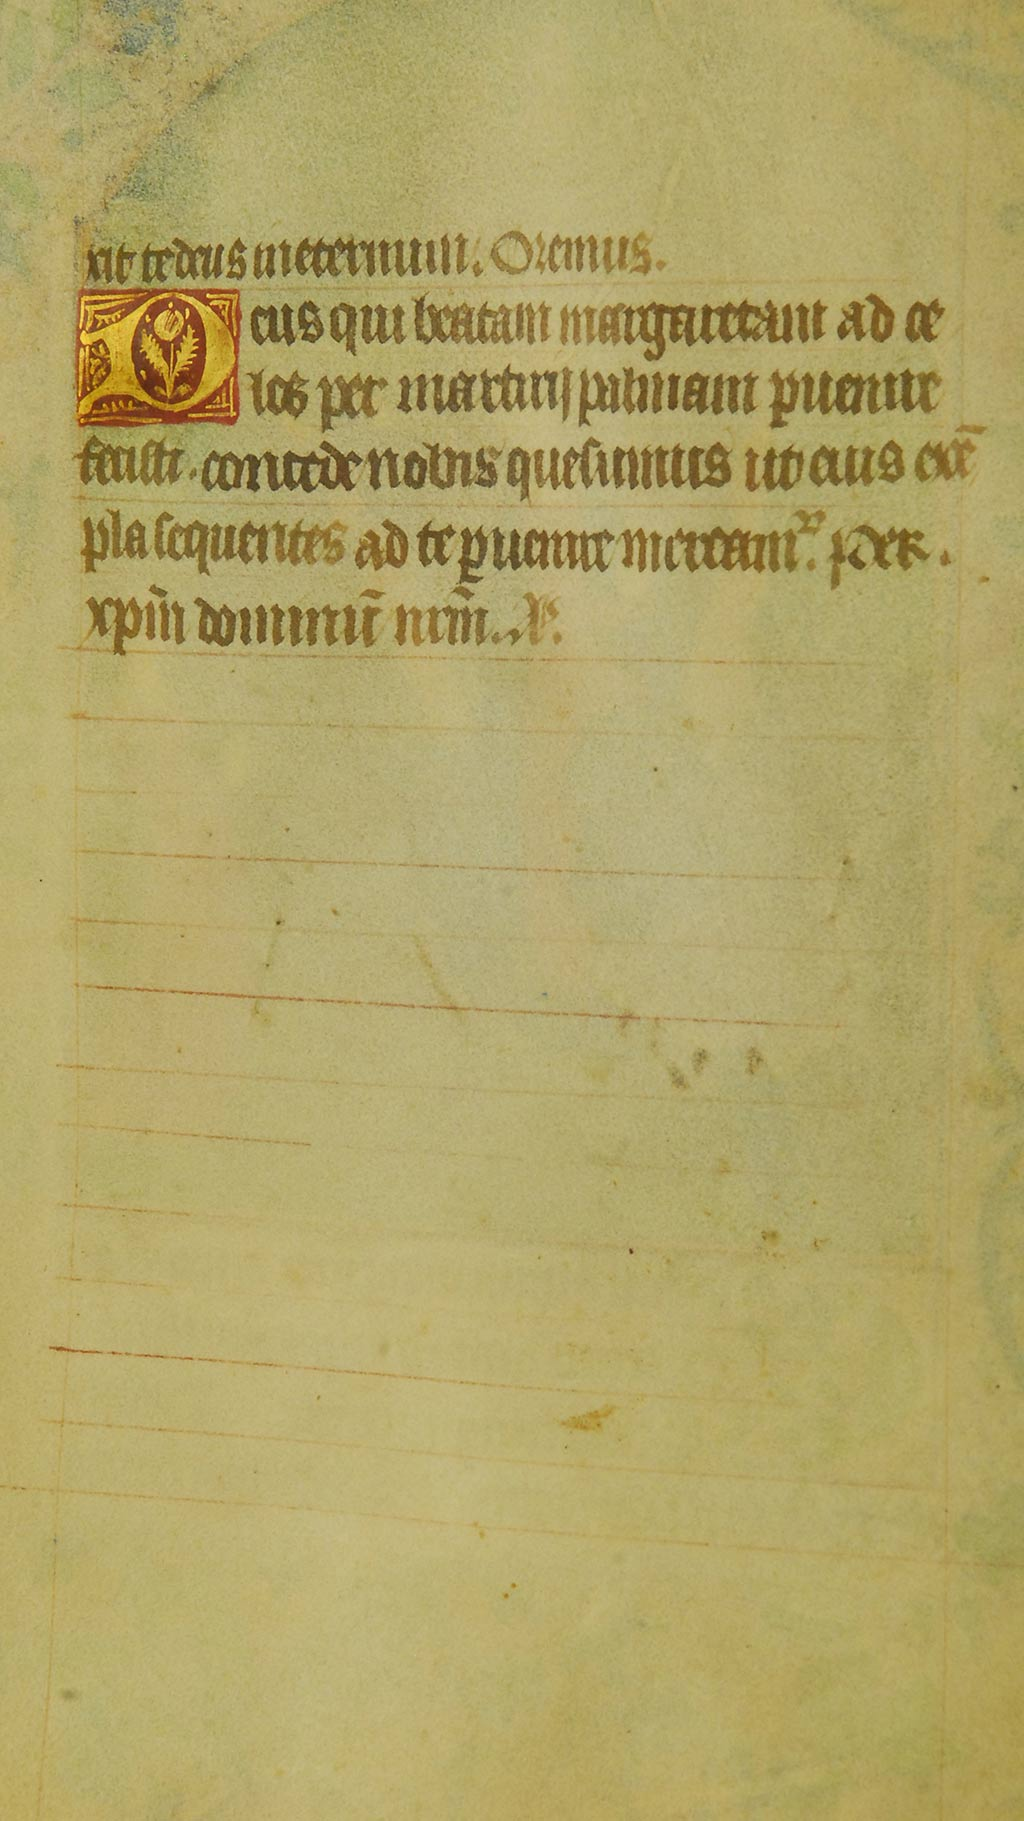 inside page of the manuscript, Latin